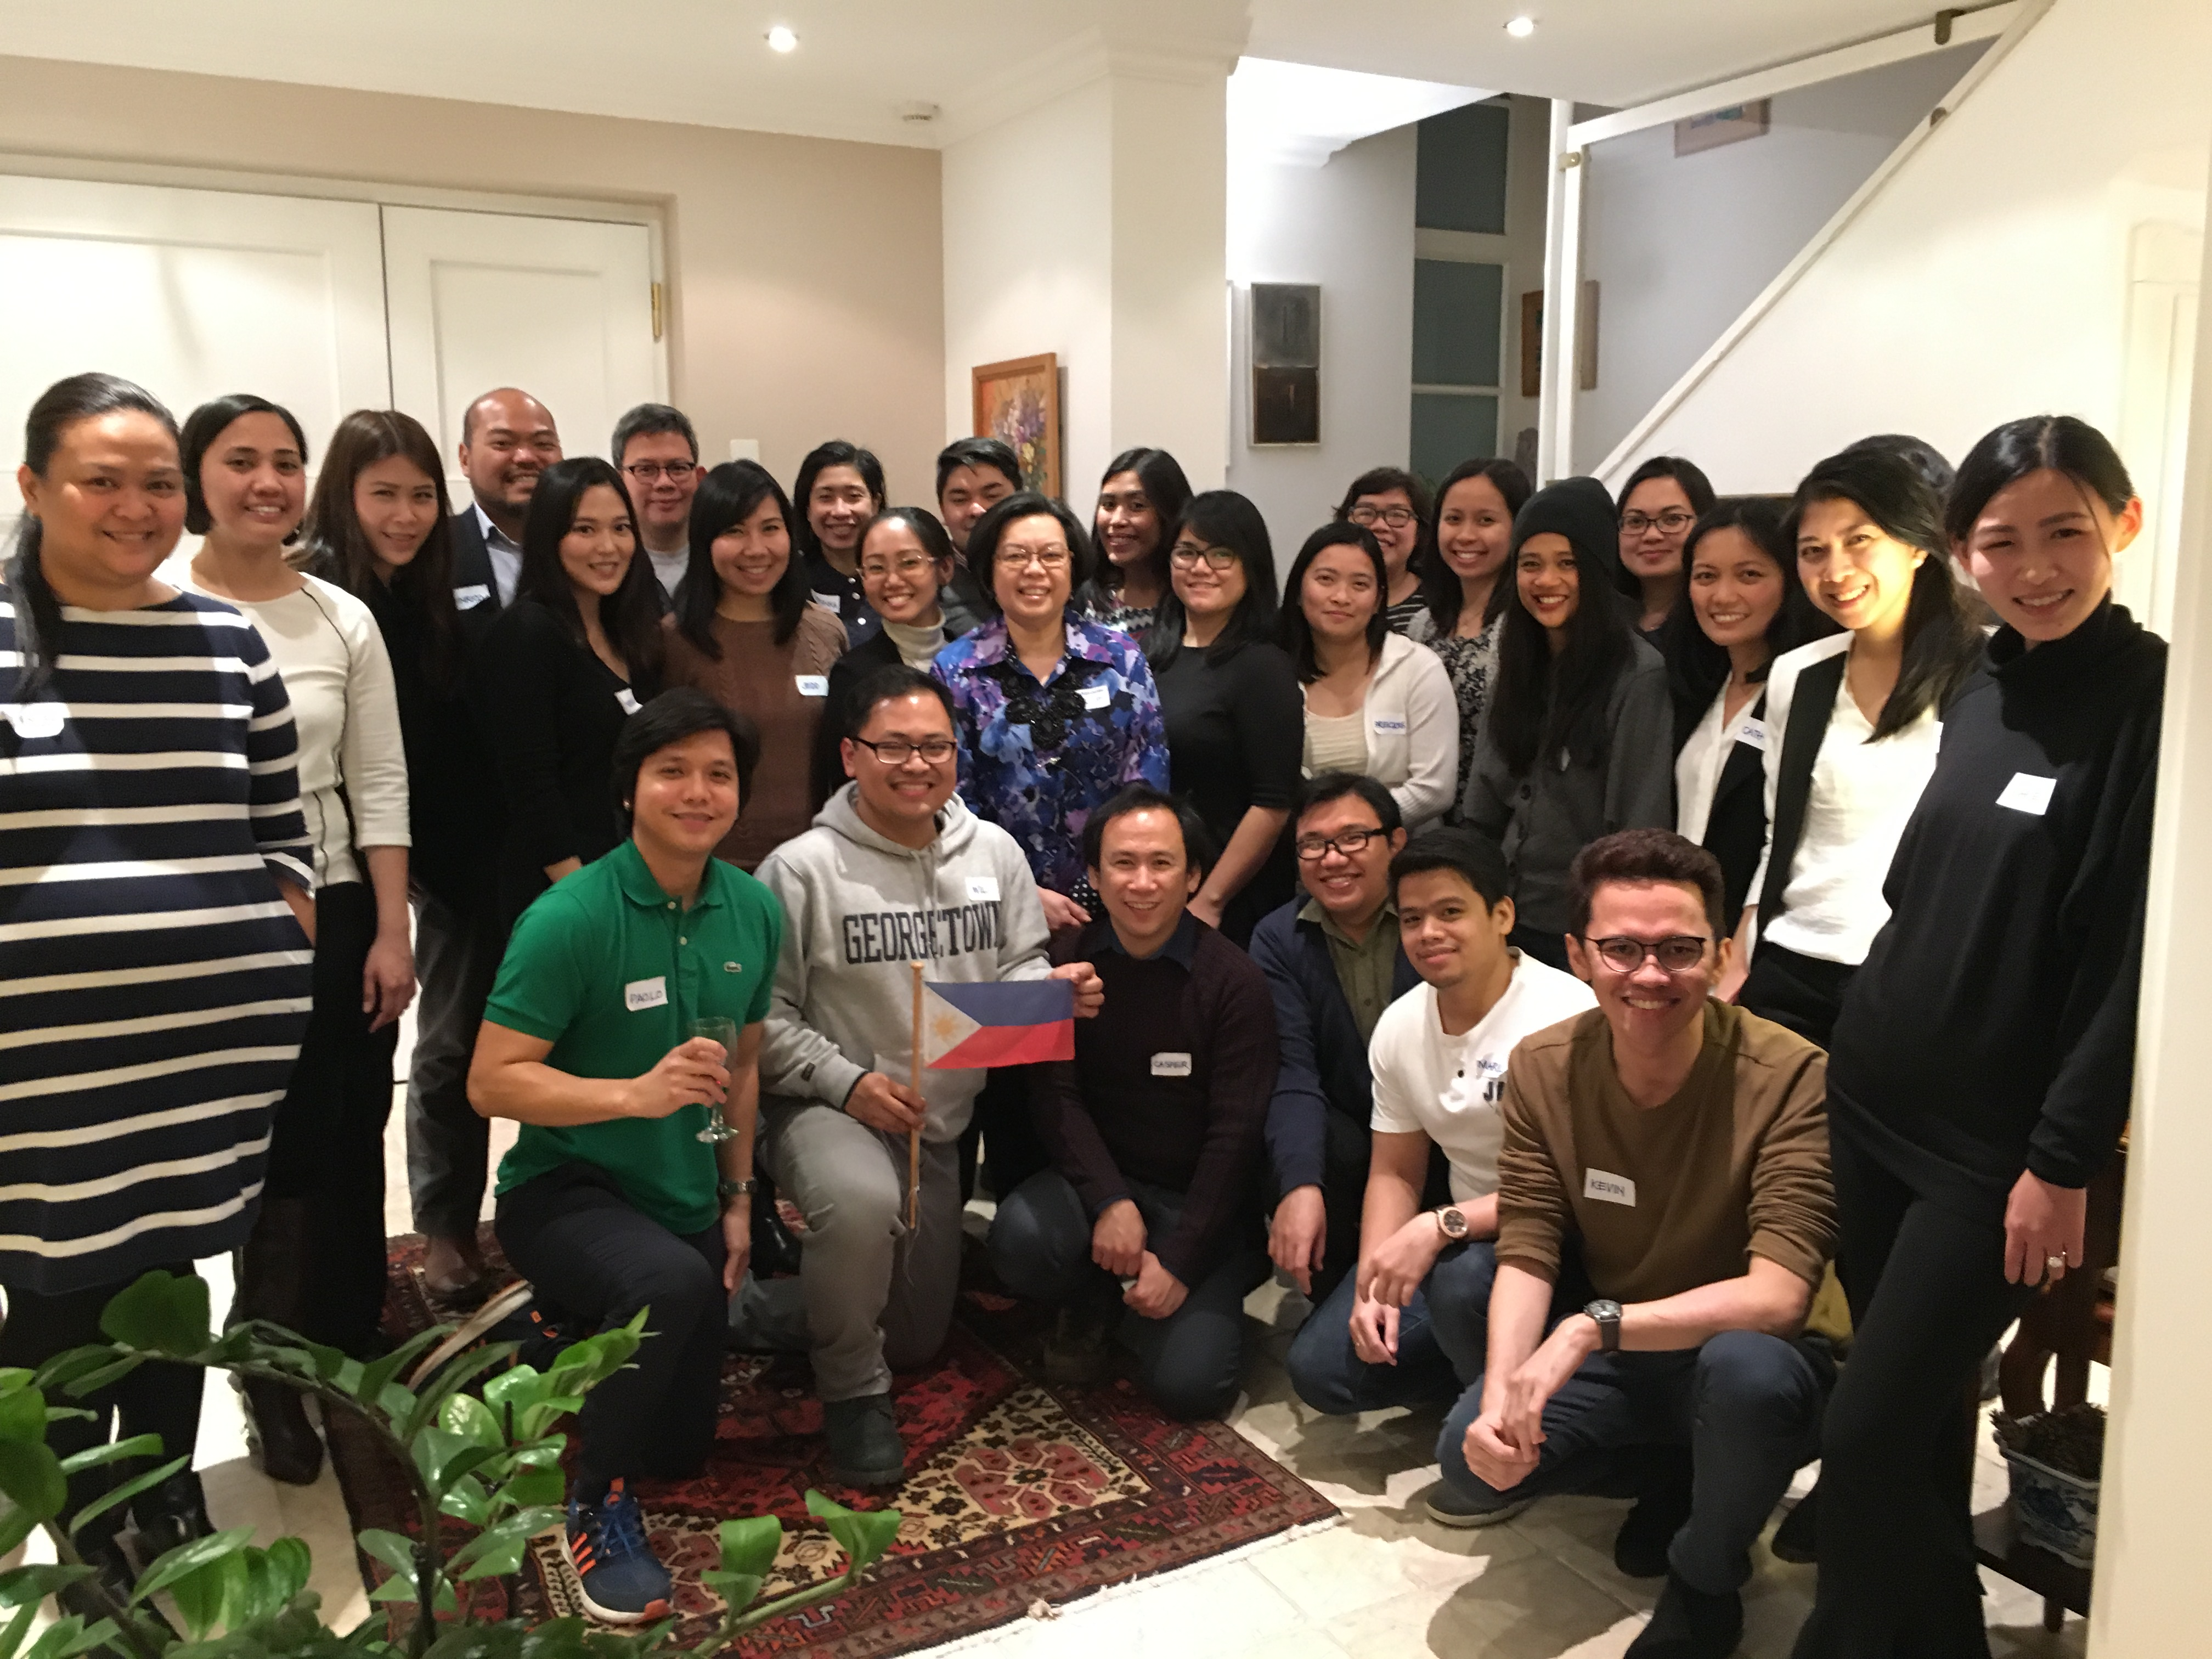 Souvenir photo pose: the graduate students and young professionals gathered at the Residence to unwind on a Saturday evening.